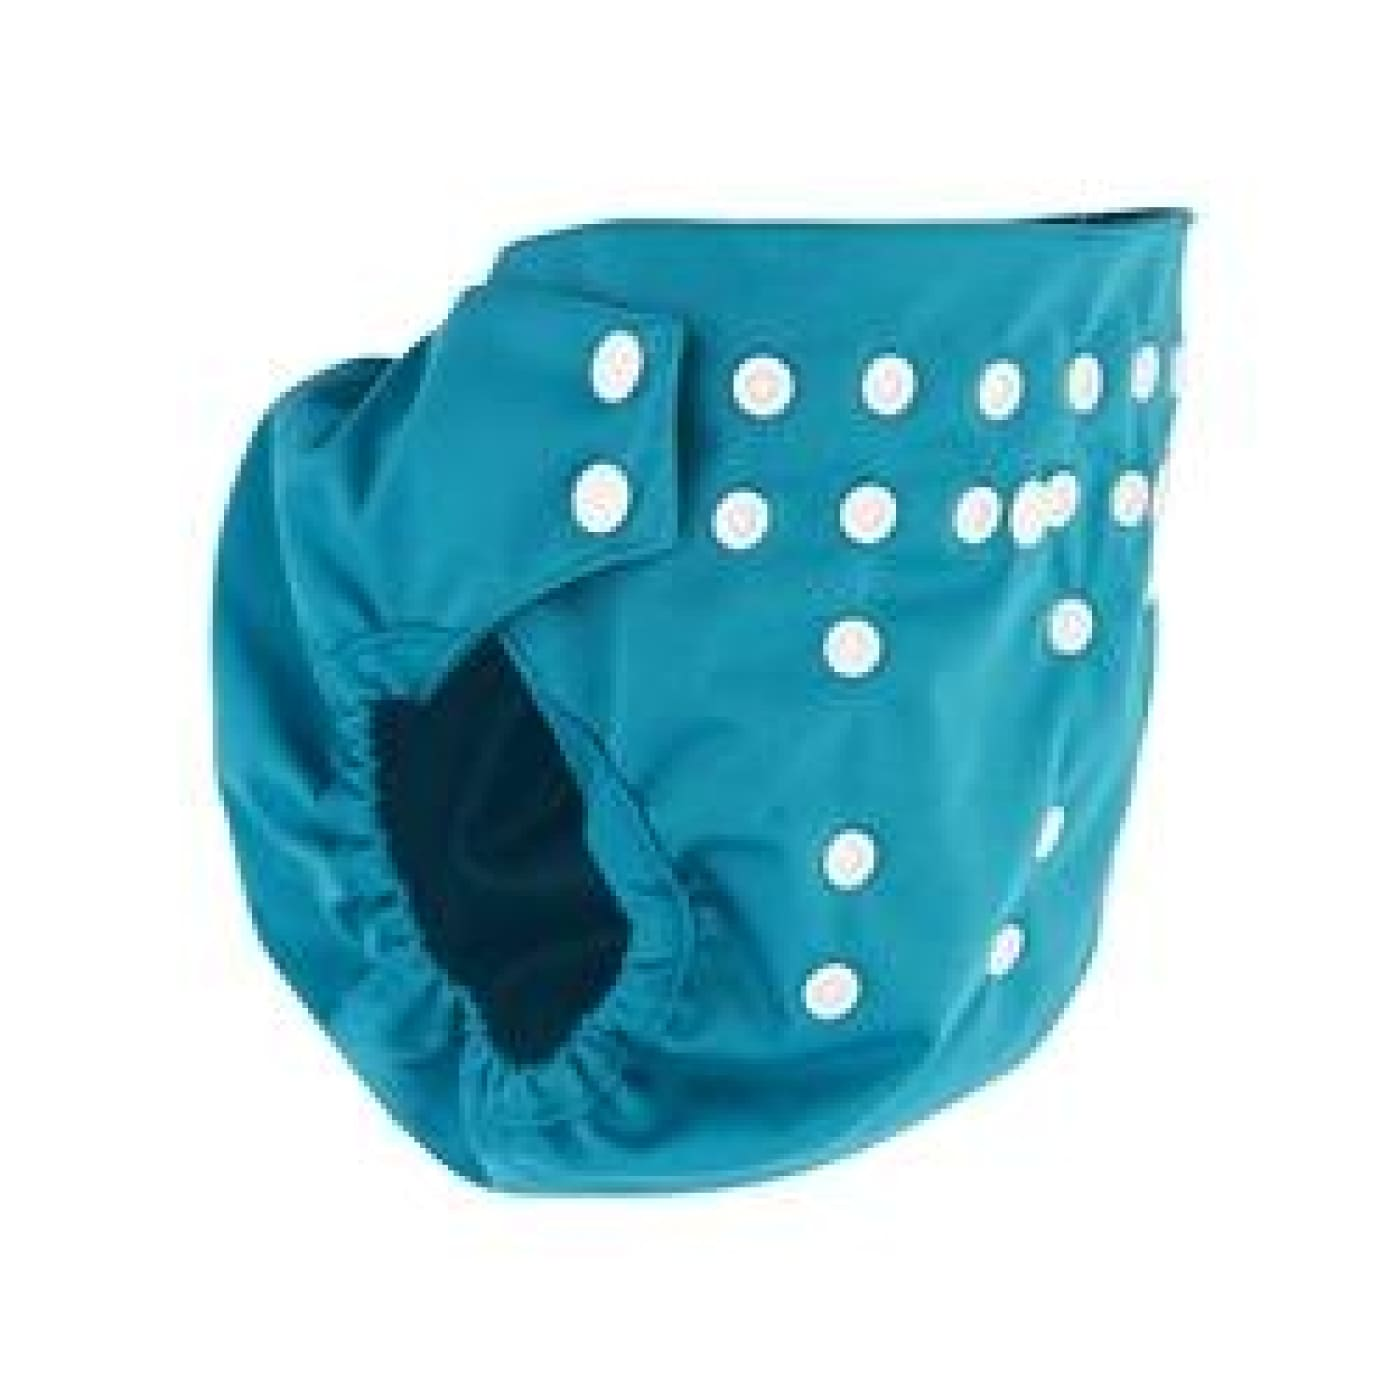 Pea Pods Pilcher Nappy Cover - Aqua Blue - BATHTIME & CHANGING - NAPPIES/WIPES/ACC ECO RANGE